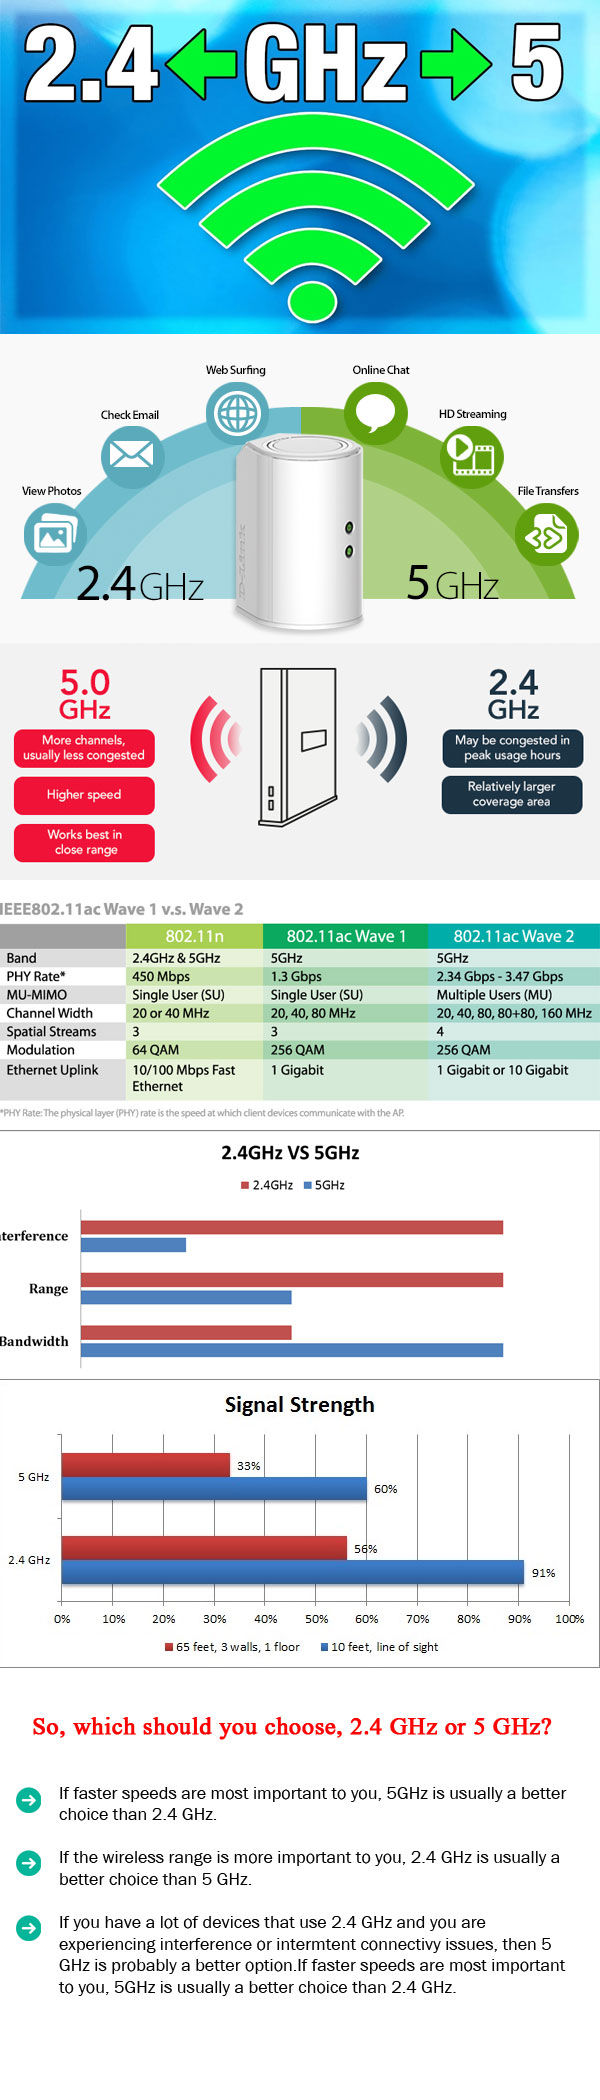 the difference between 2.4 GHz and 5 GHz